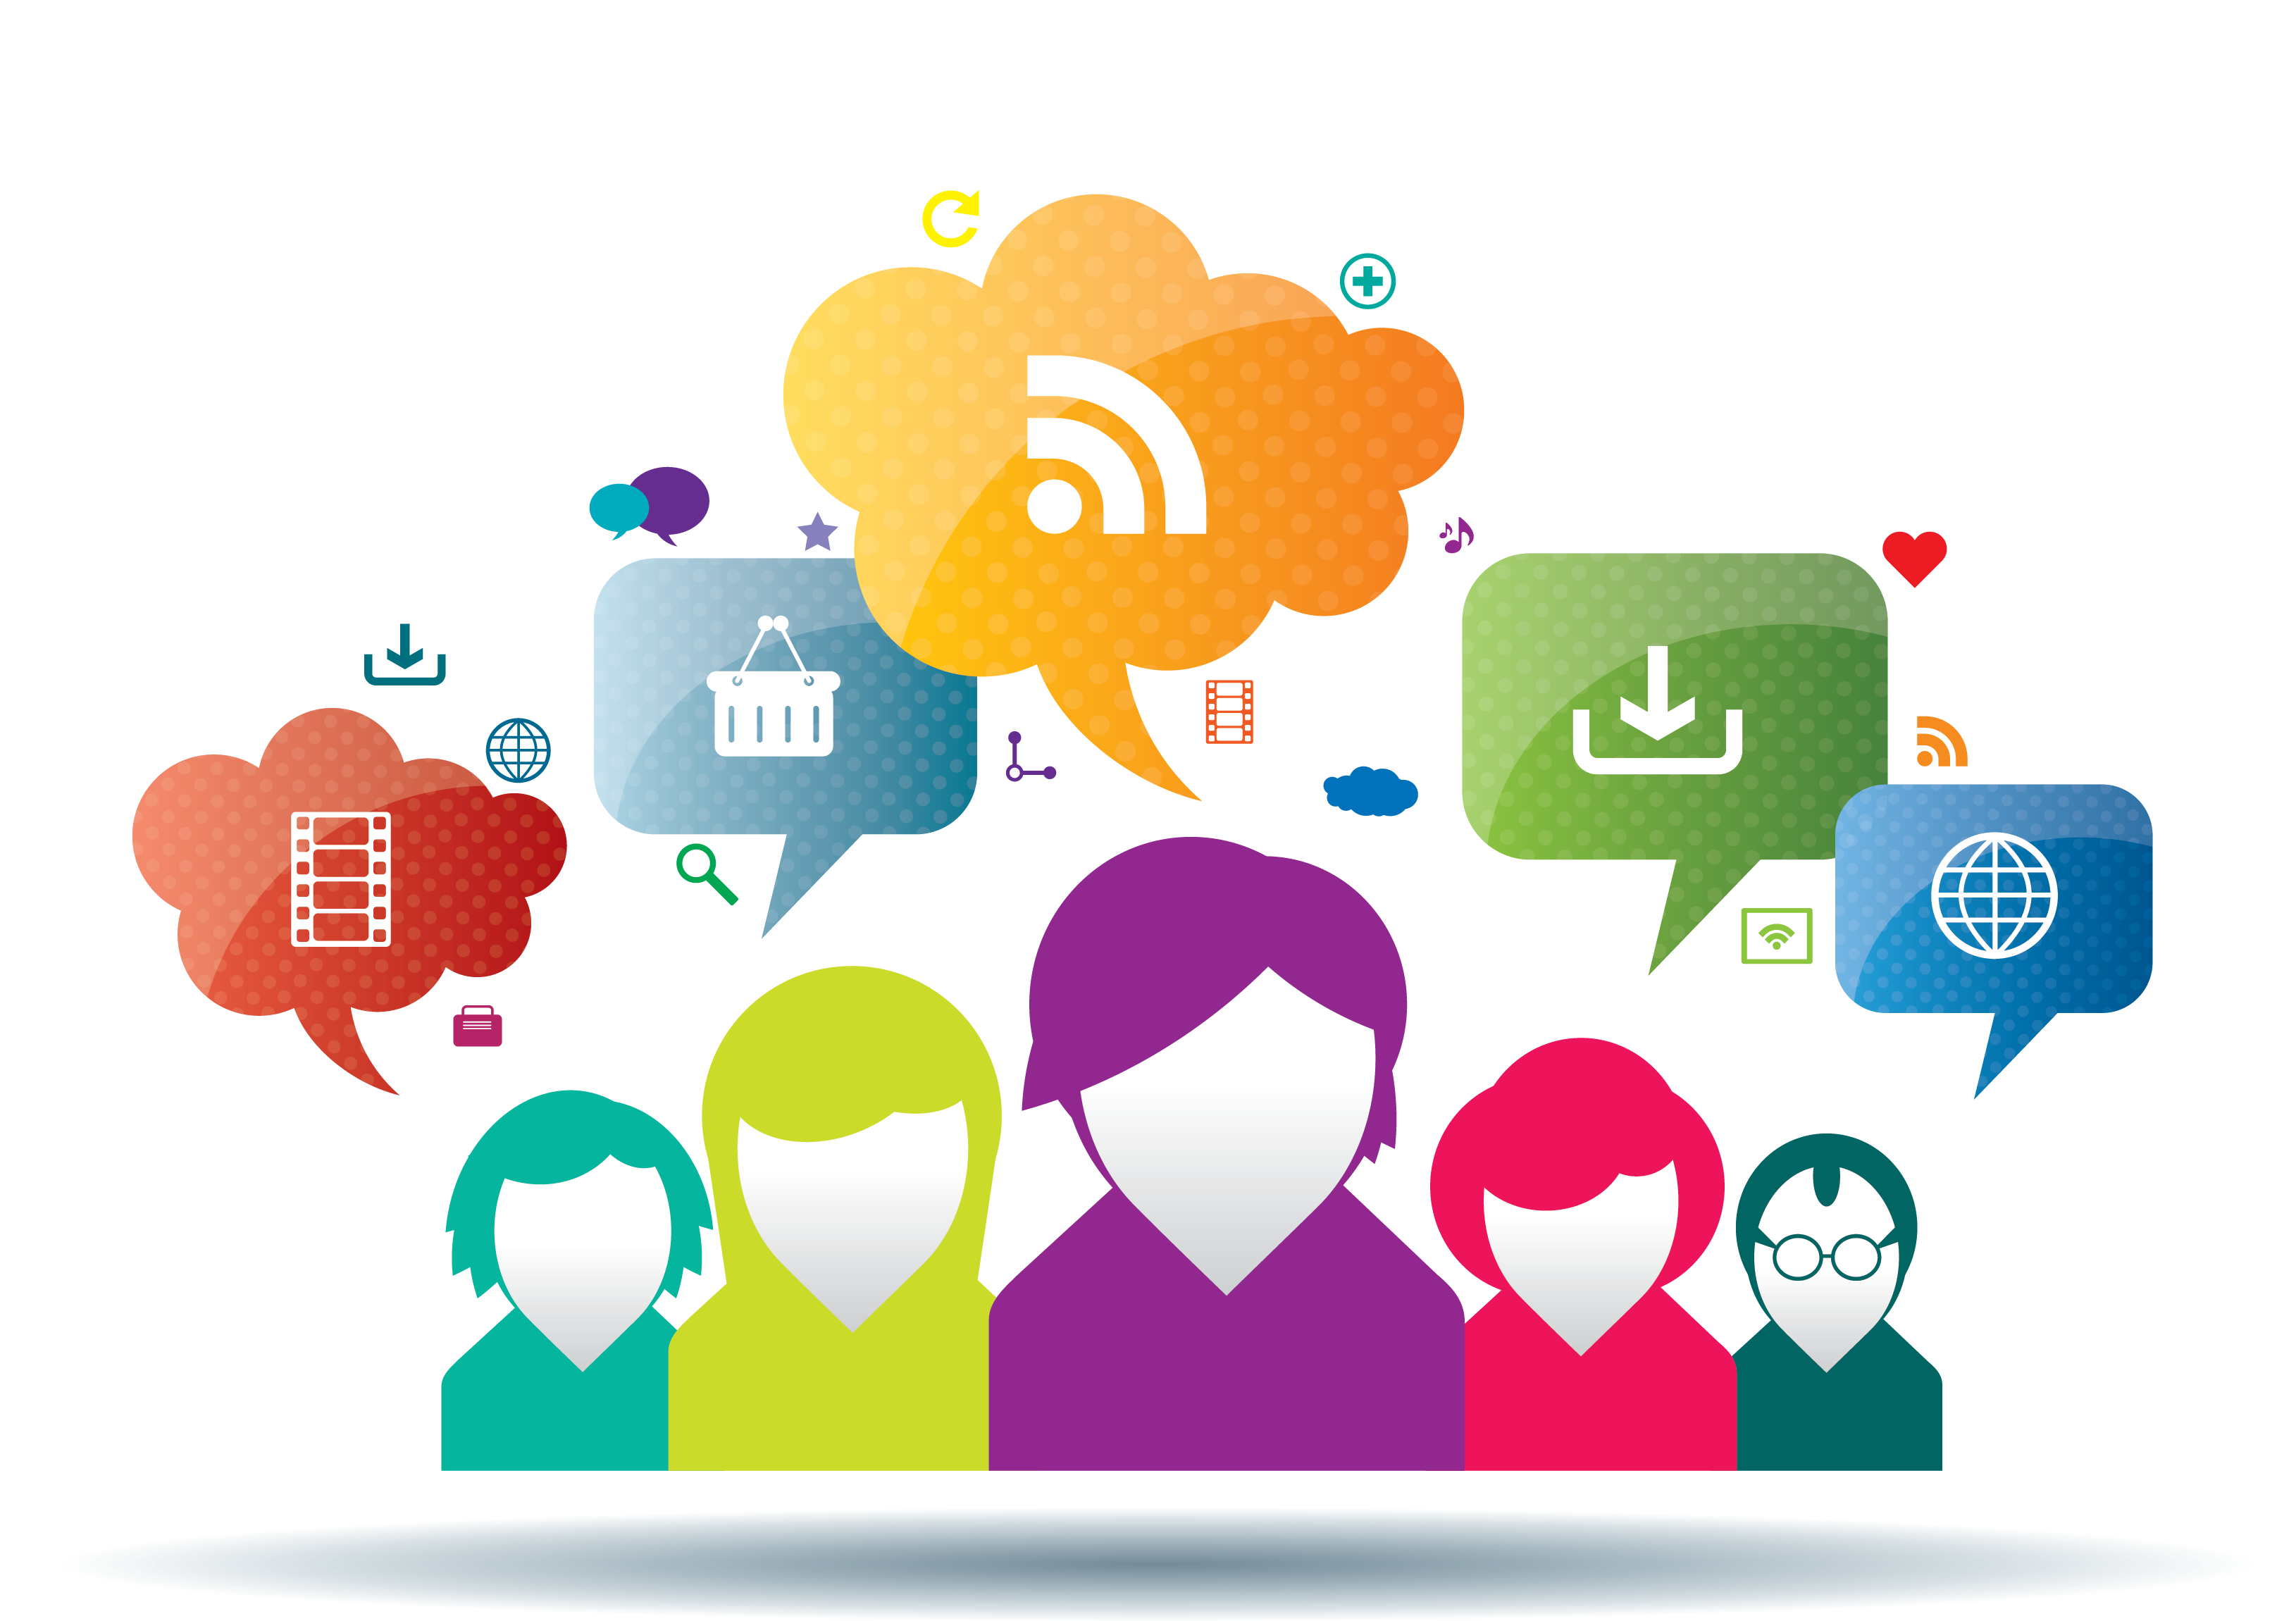 face to face vs social media Submit your presentation to the assignment files tab comparison contrast annotated bibliography4 facetoface vs social media when it comes to social media and facetoface communication, we see one taking over the other vastly.